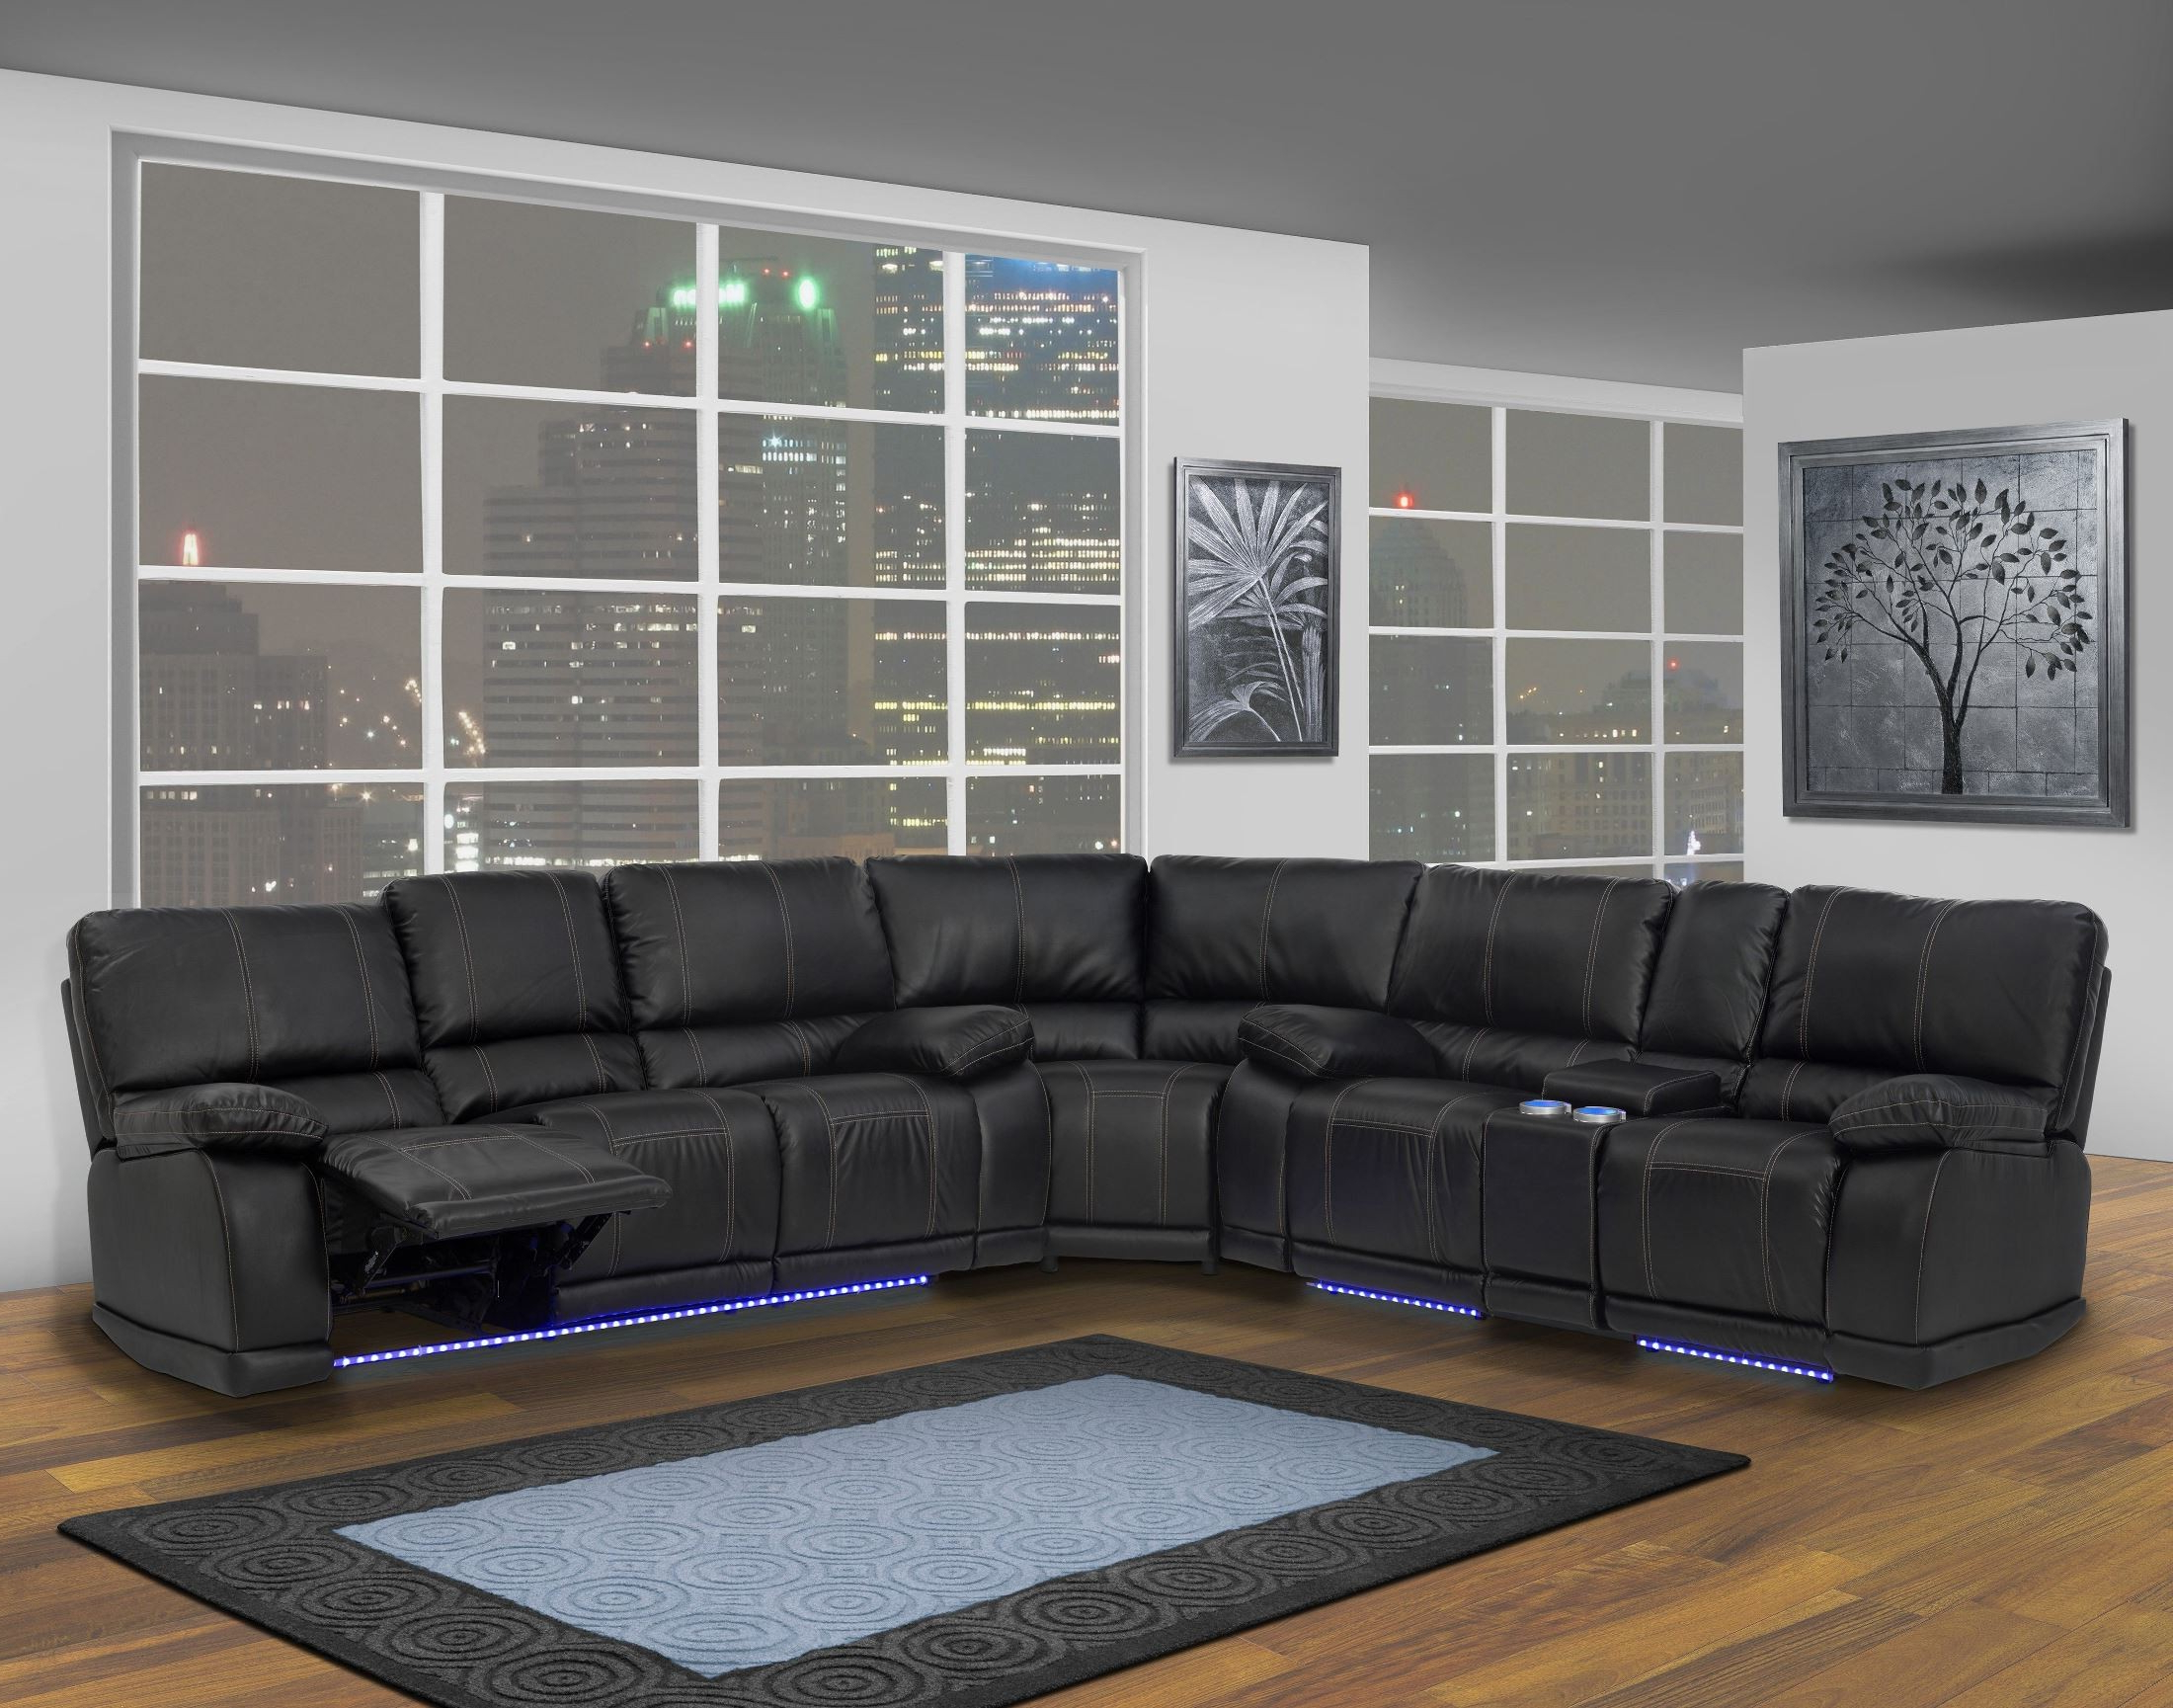 Fashionable Mesa Foam 2 Piece Sectionals Within Electra Mesa Black Power Reclining Sectional From New Classics (22 (Gallery 13 of 20)